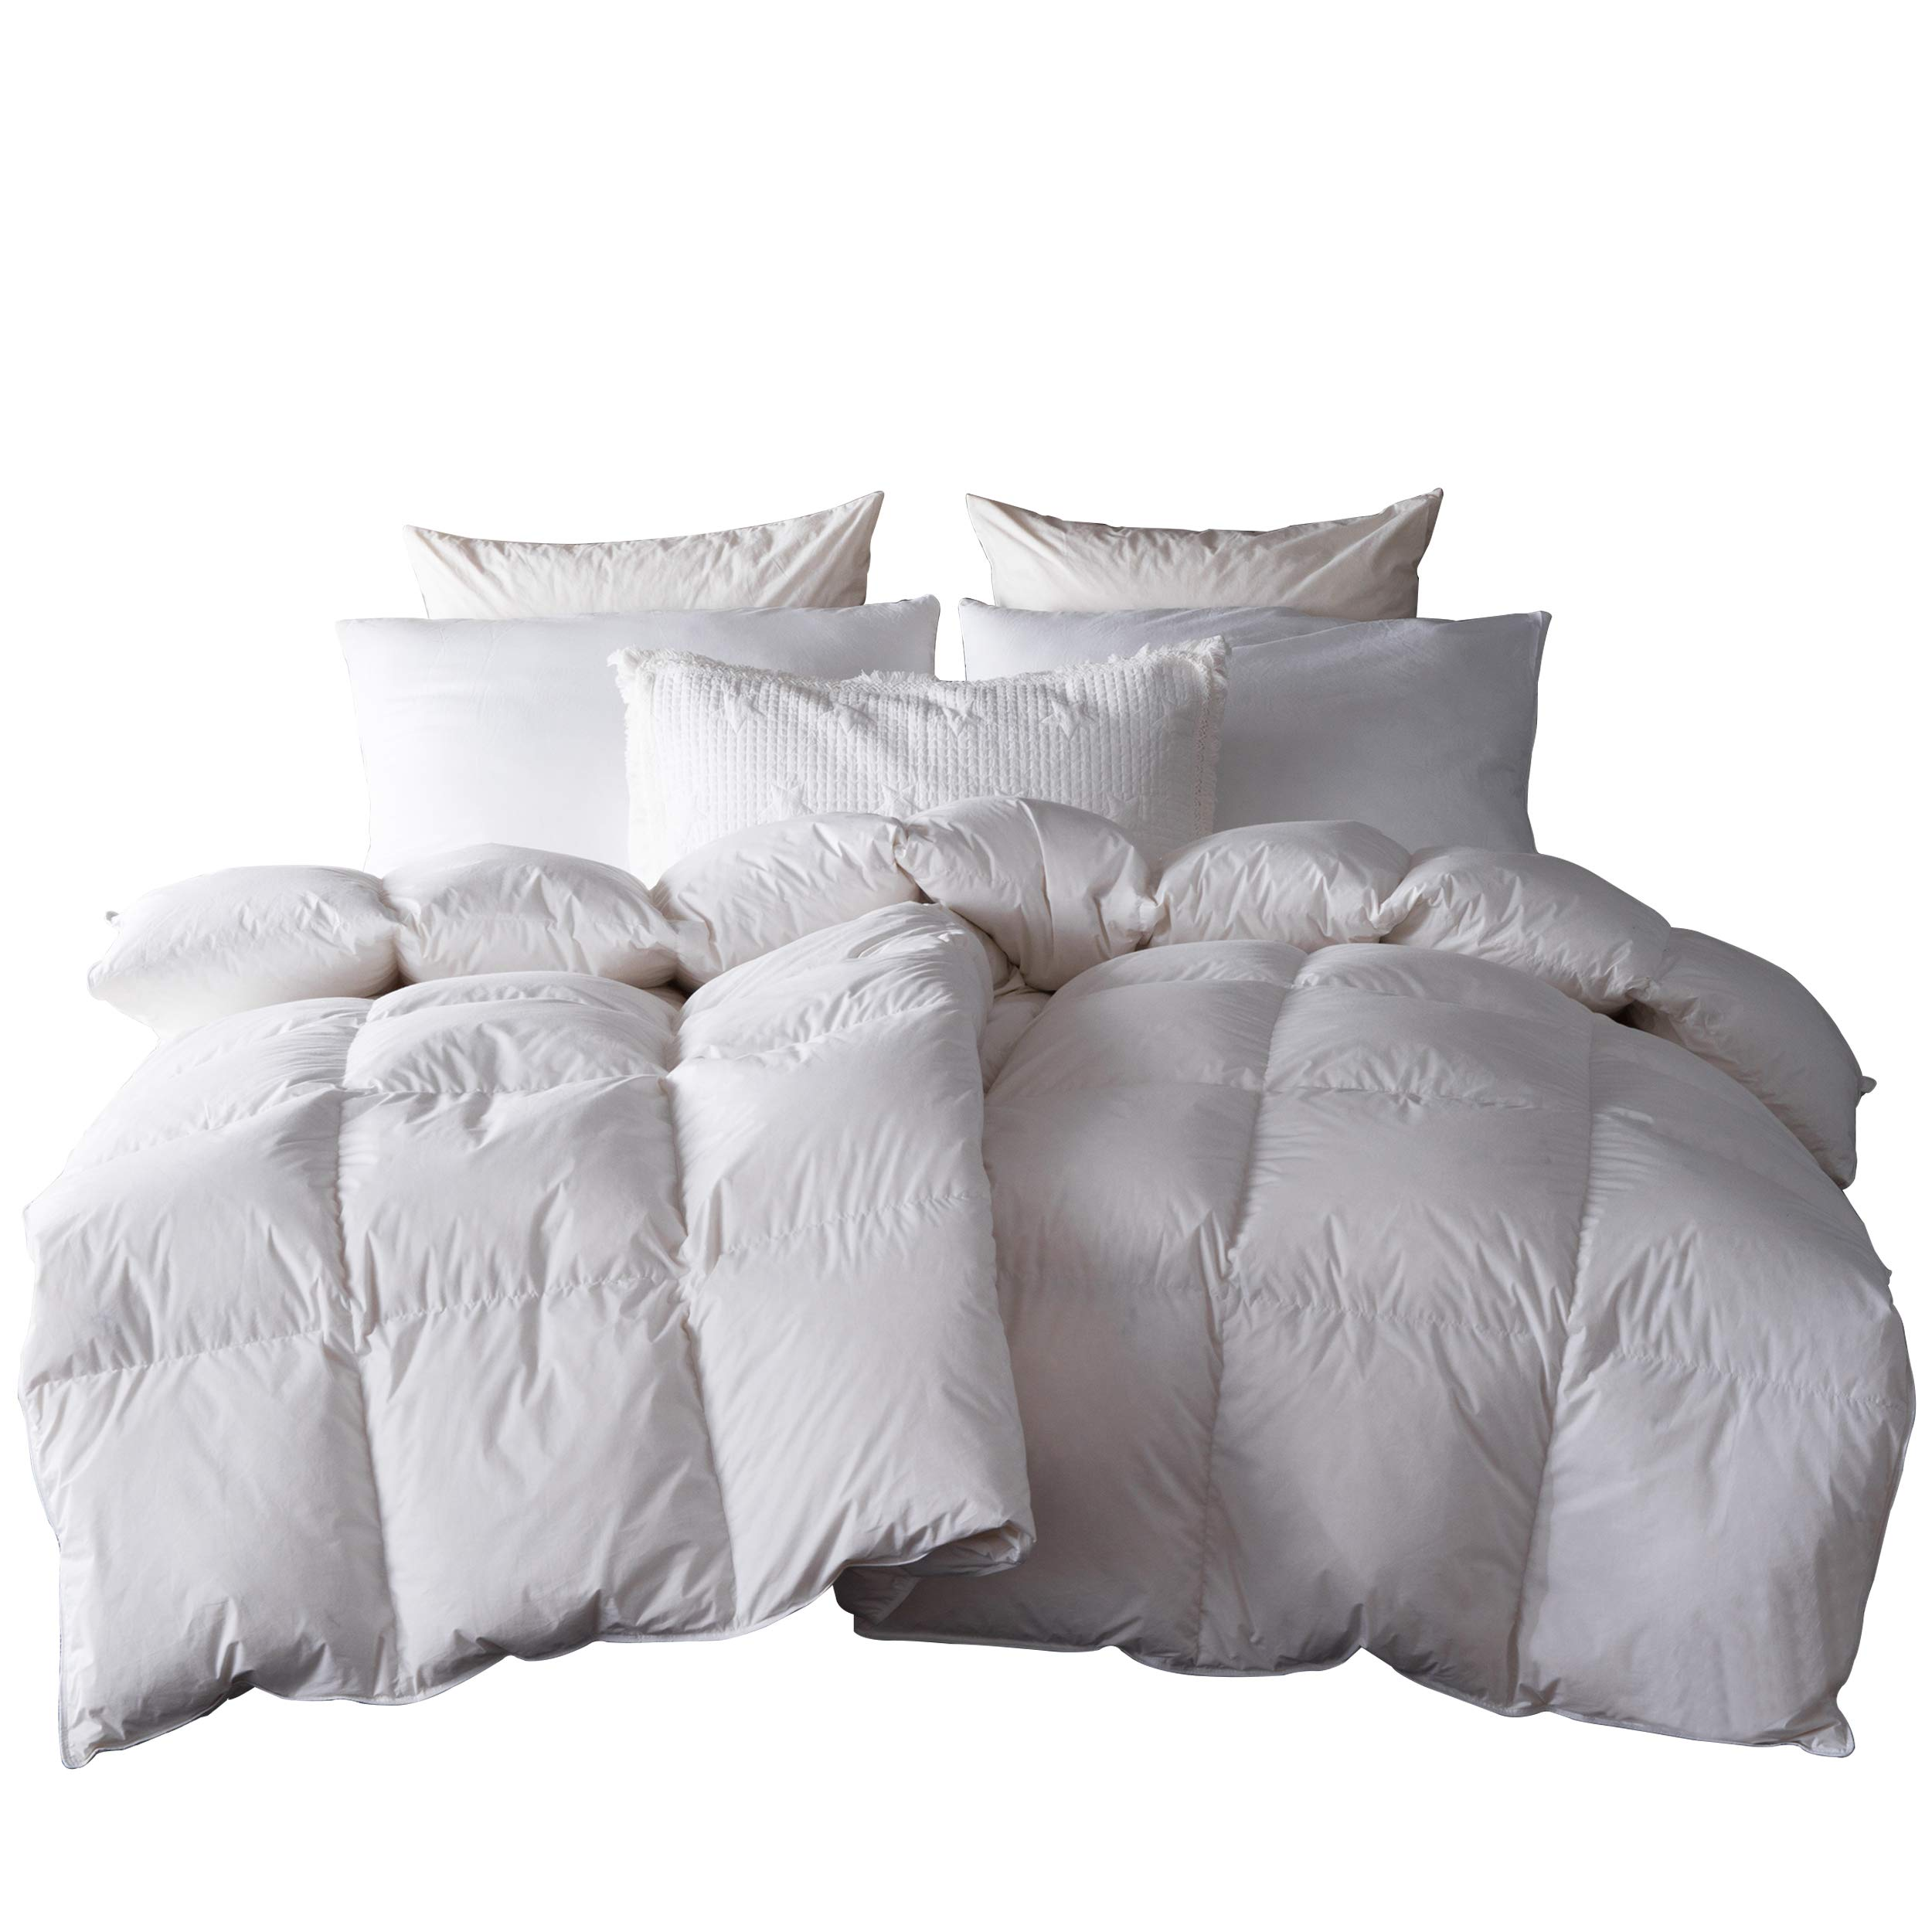 SNOWMAN White Goose Down & Feather Blend Comforter Queen Size 100% Cotton Cover Down Proof Baffle Boxes Construction,Soft and Warm